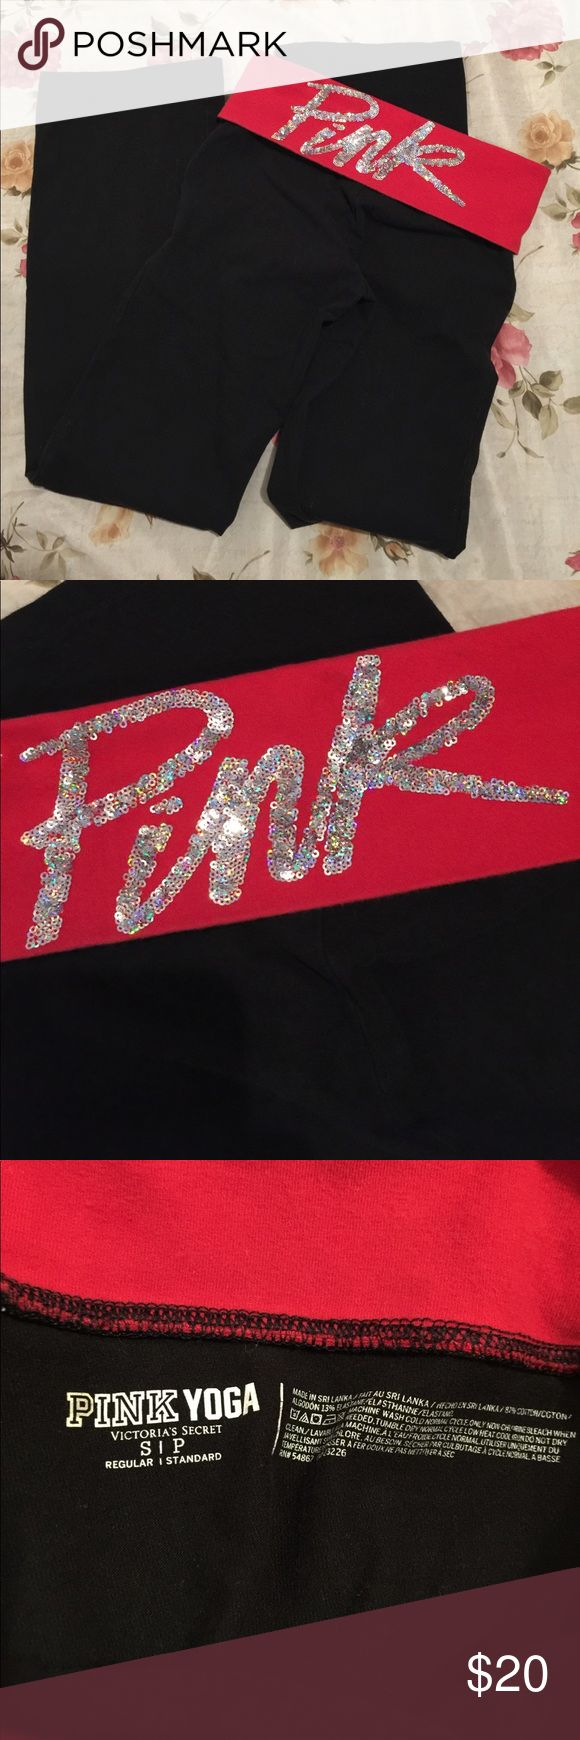 VS PINK YOGA PANTS VS PINK YOGA PANTS SIZE SMALL. GENTLY USED. NO HOLES OR STAINS ❤️ BLACK WITH RED FOLD OVER AND COLORFUL SEQUINS ON BACK 😍 PINK Victoria's Secret Pants